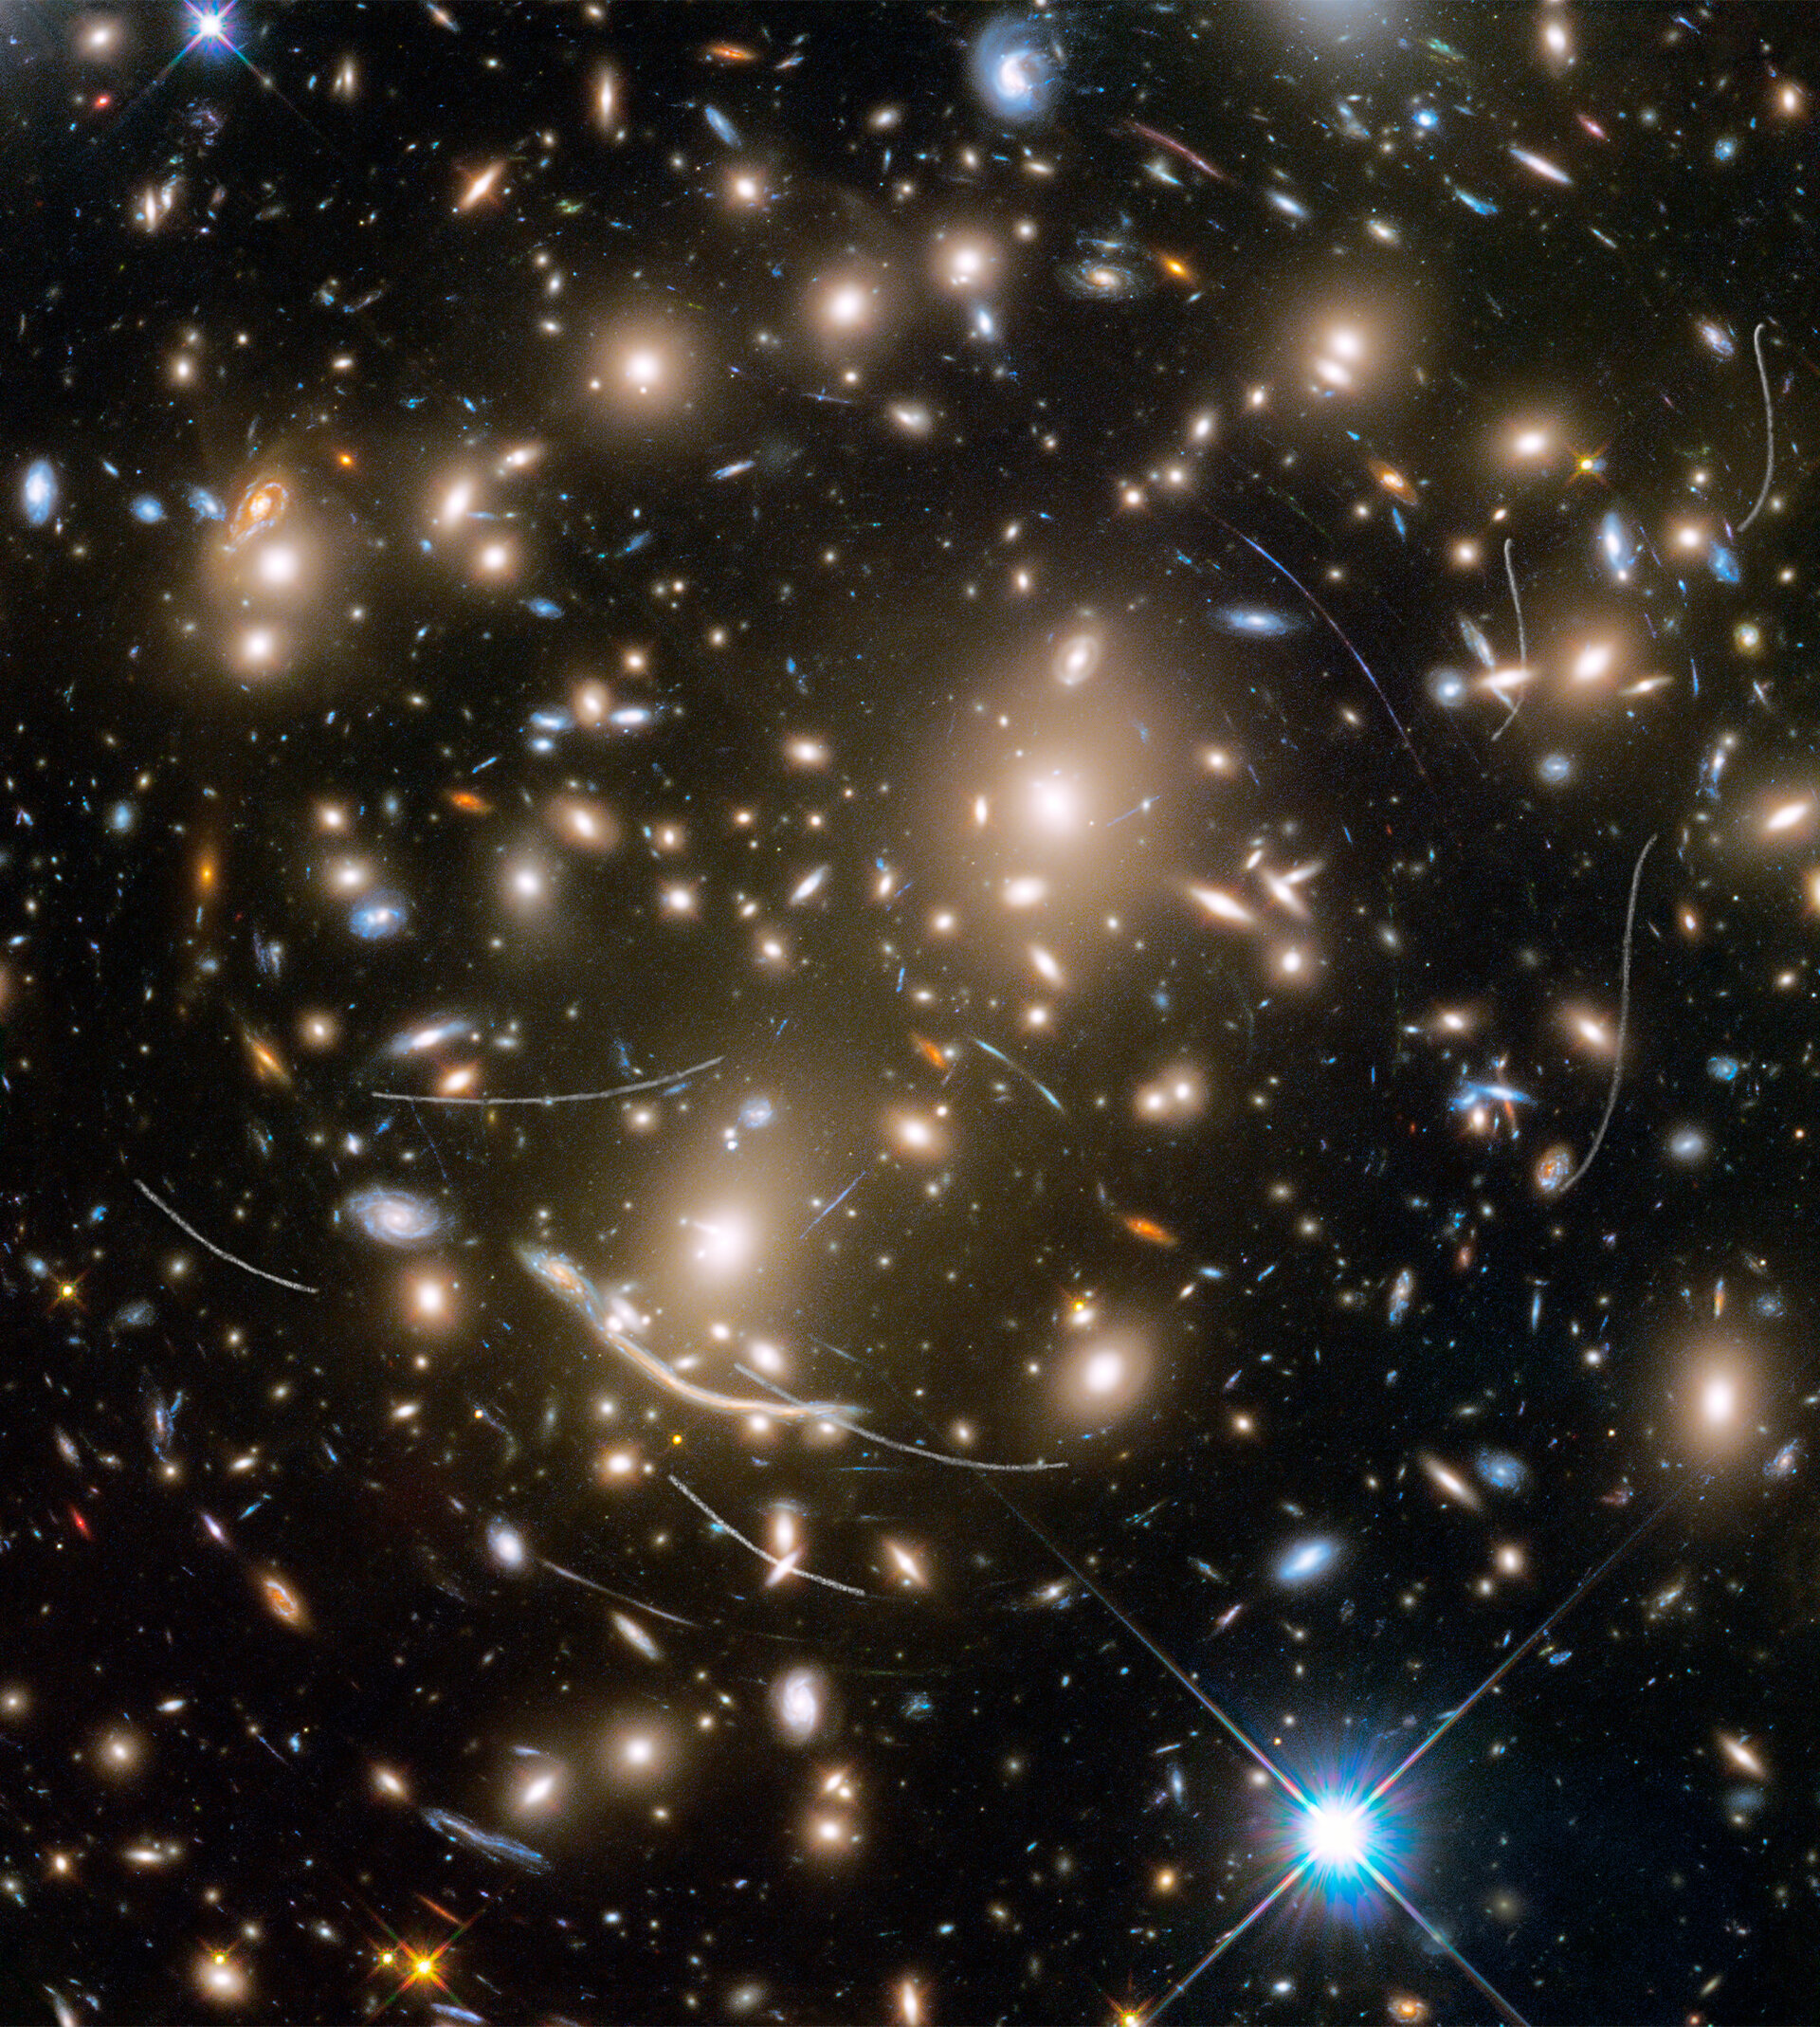 Nearby asteroids photobomb distant galaxies